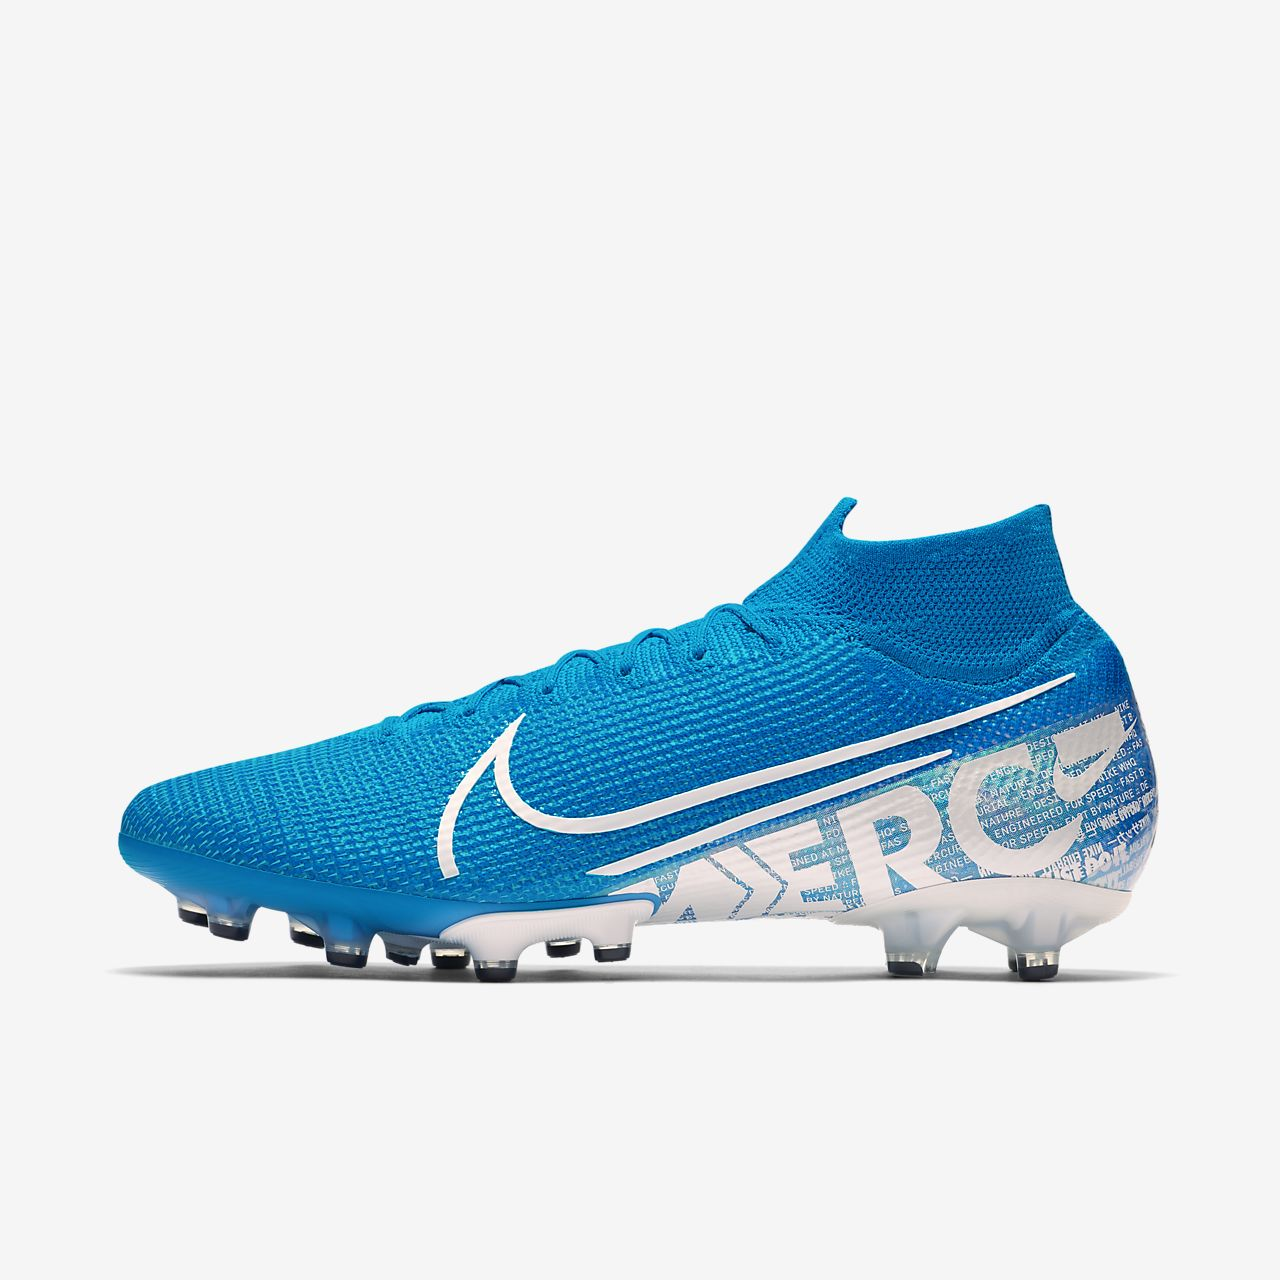 Nike Mercurial Superfly 7 Elite AG-PRO Botas de fútbol para césped artificial